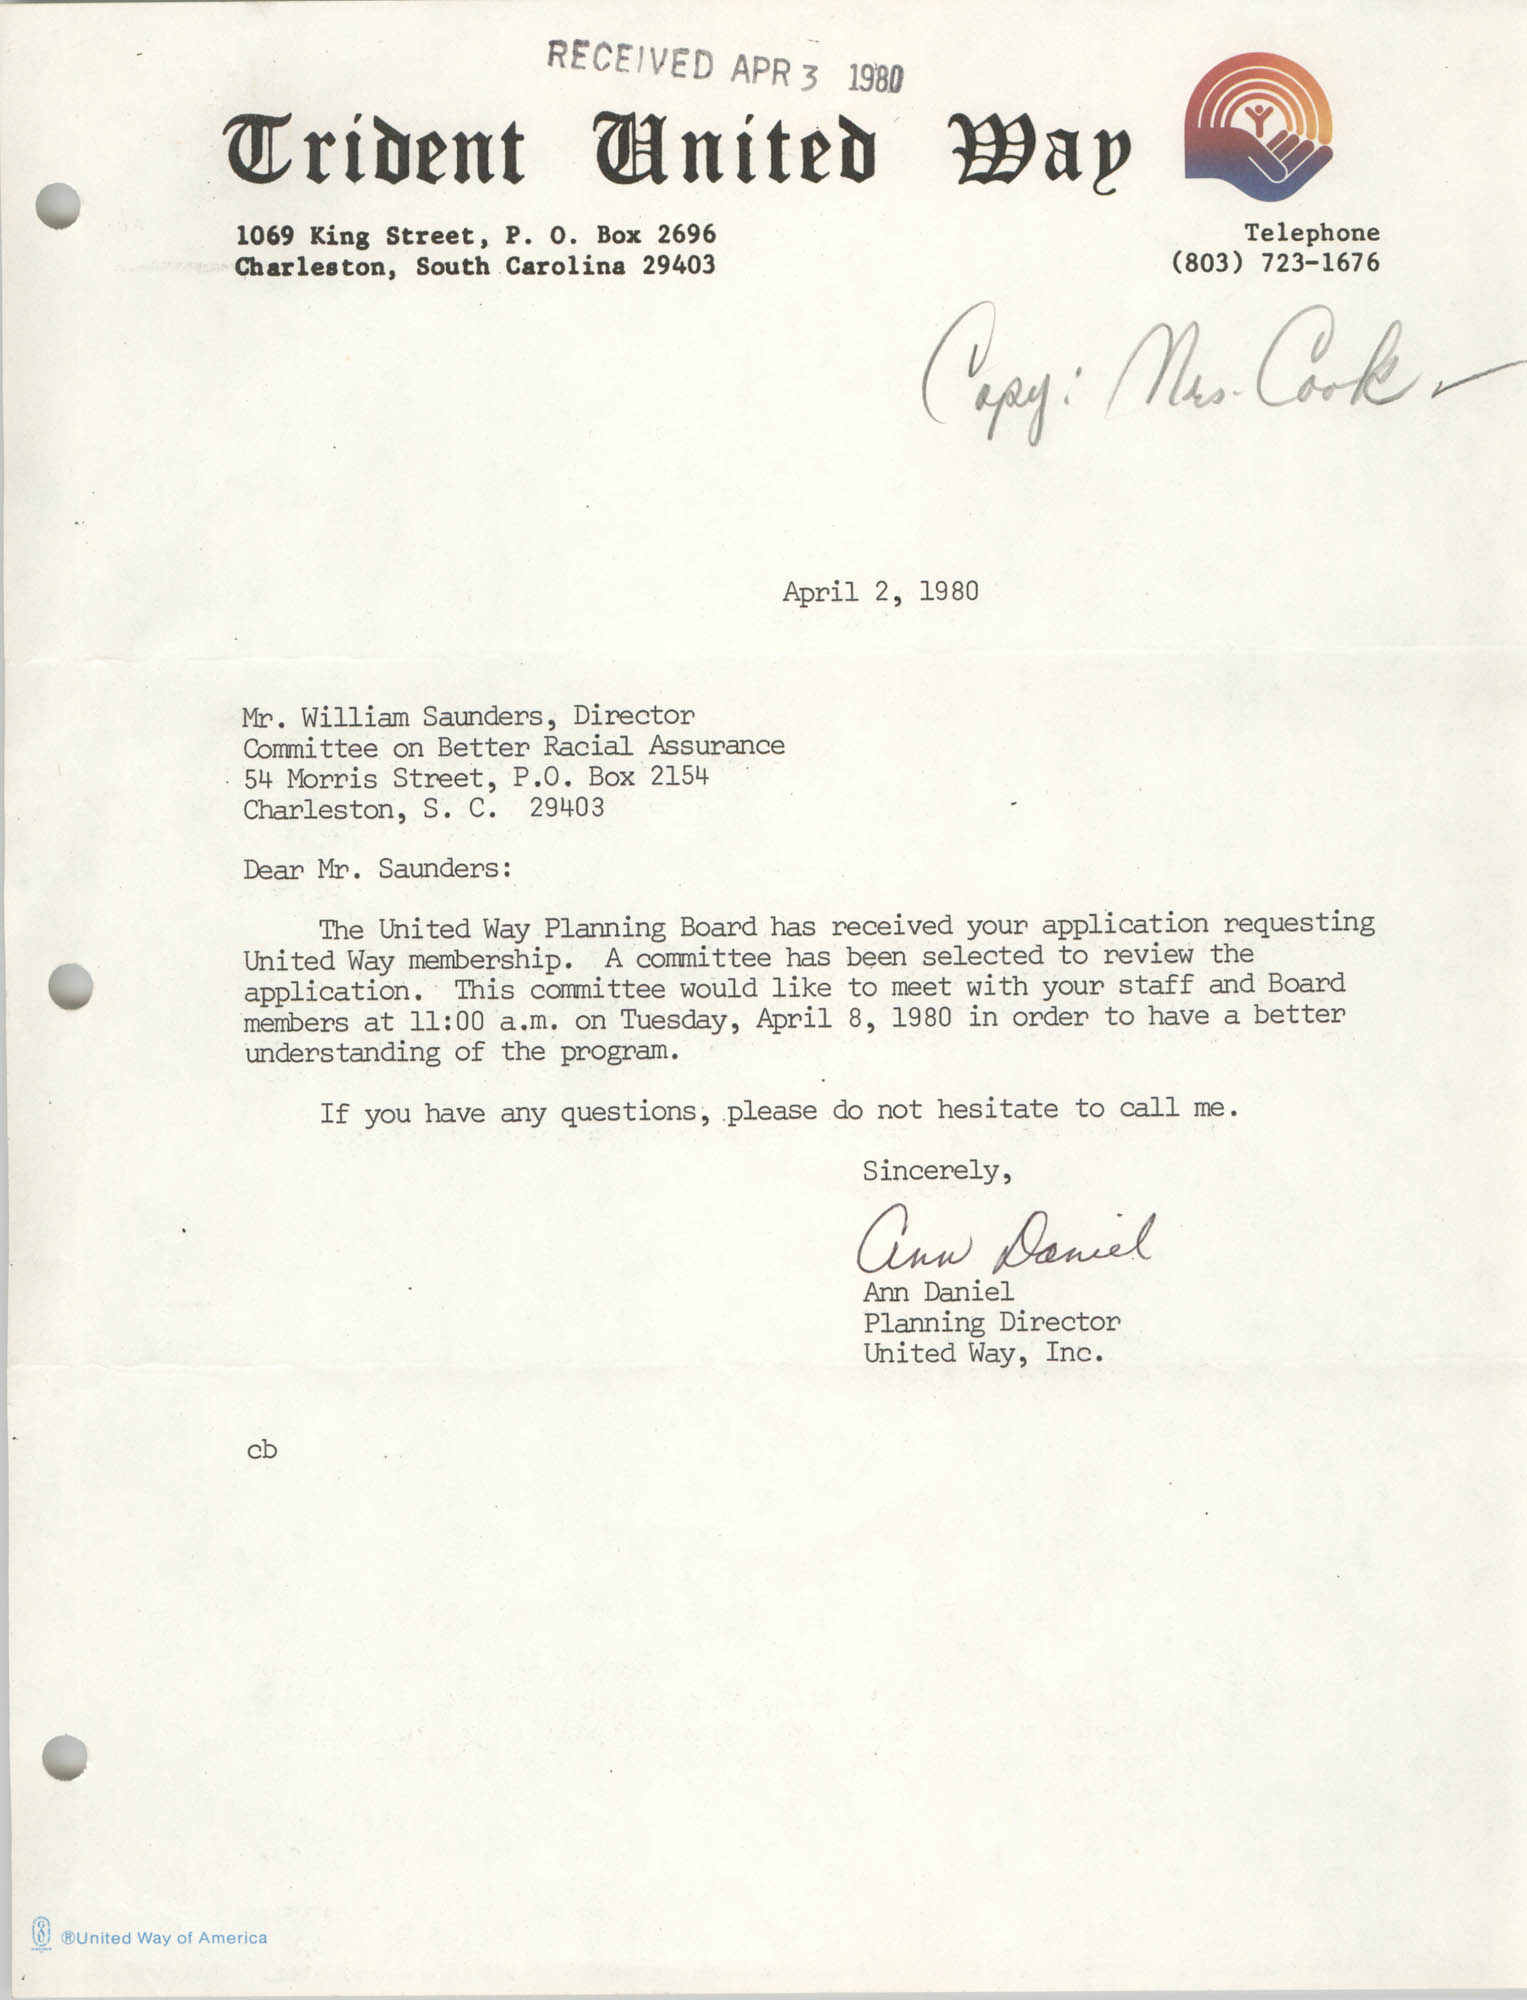 Letter from Ann Daniel to William Saunders, April 2, 1980